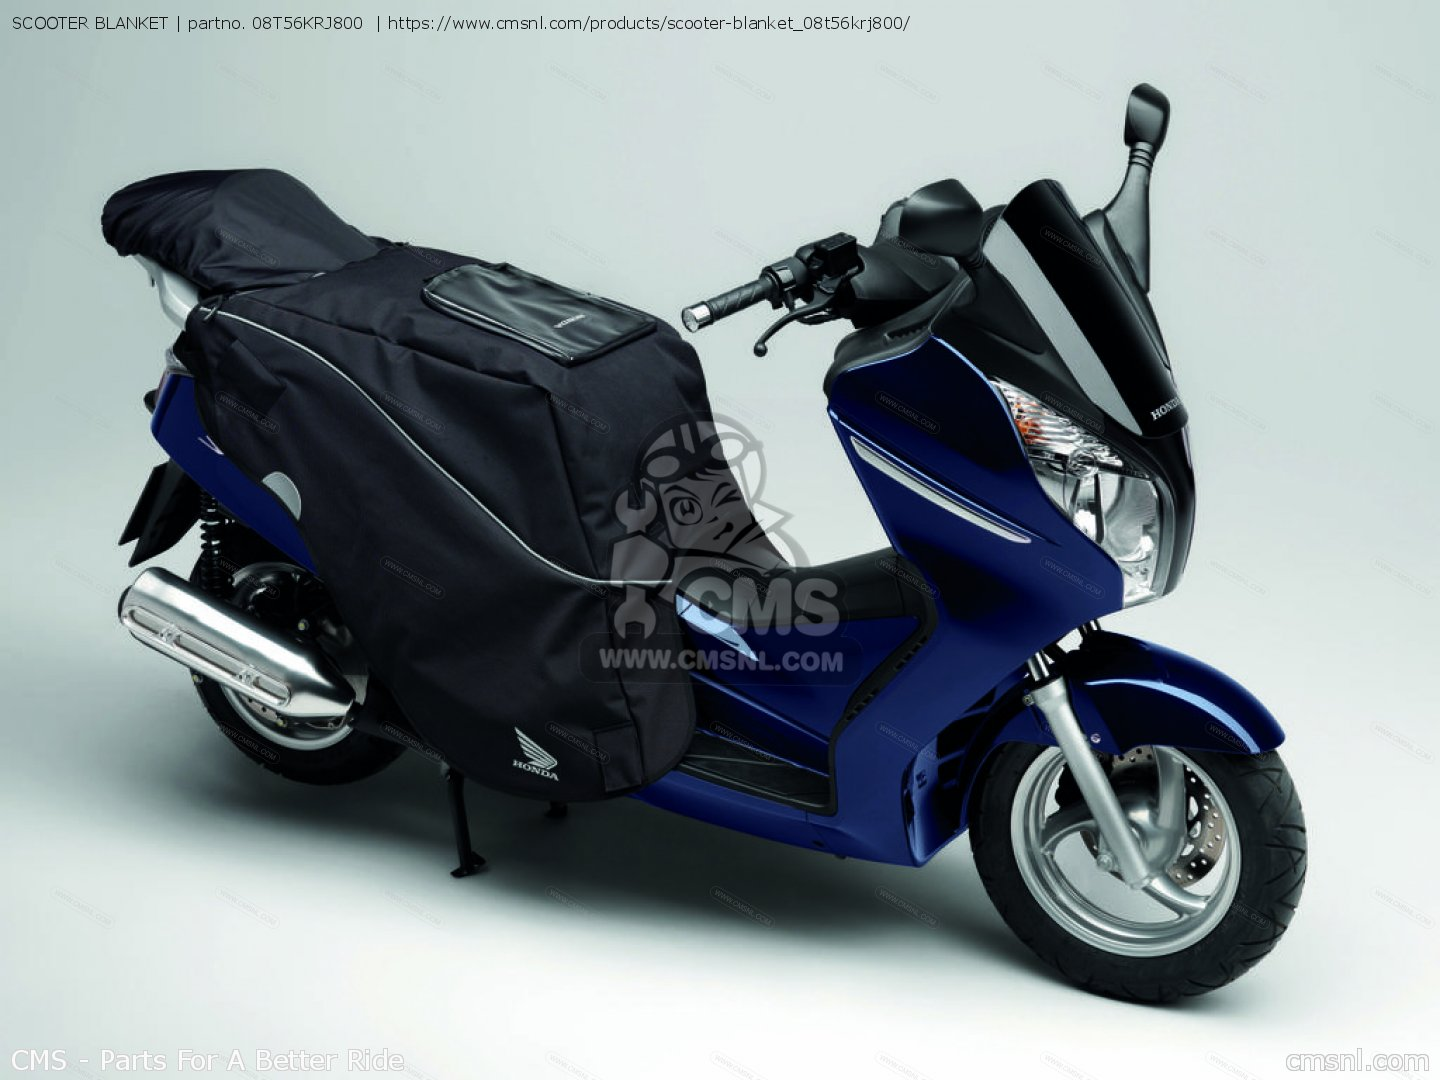 Scooter Blanket For Fjs400d Silver Wing 2006 6 France Cmf